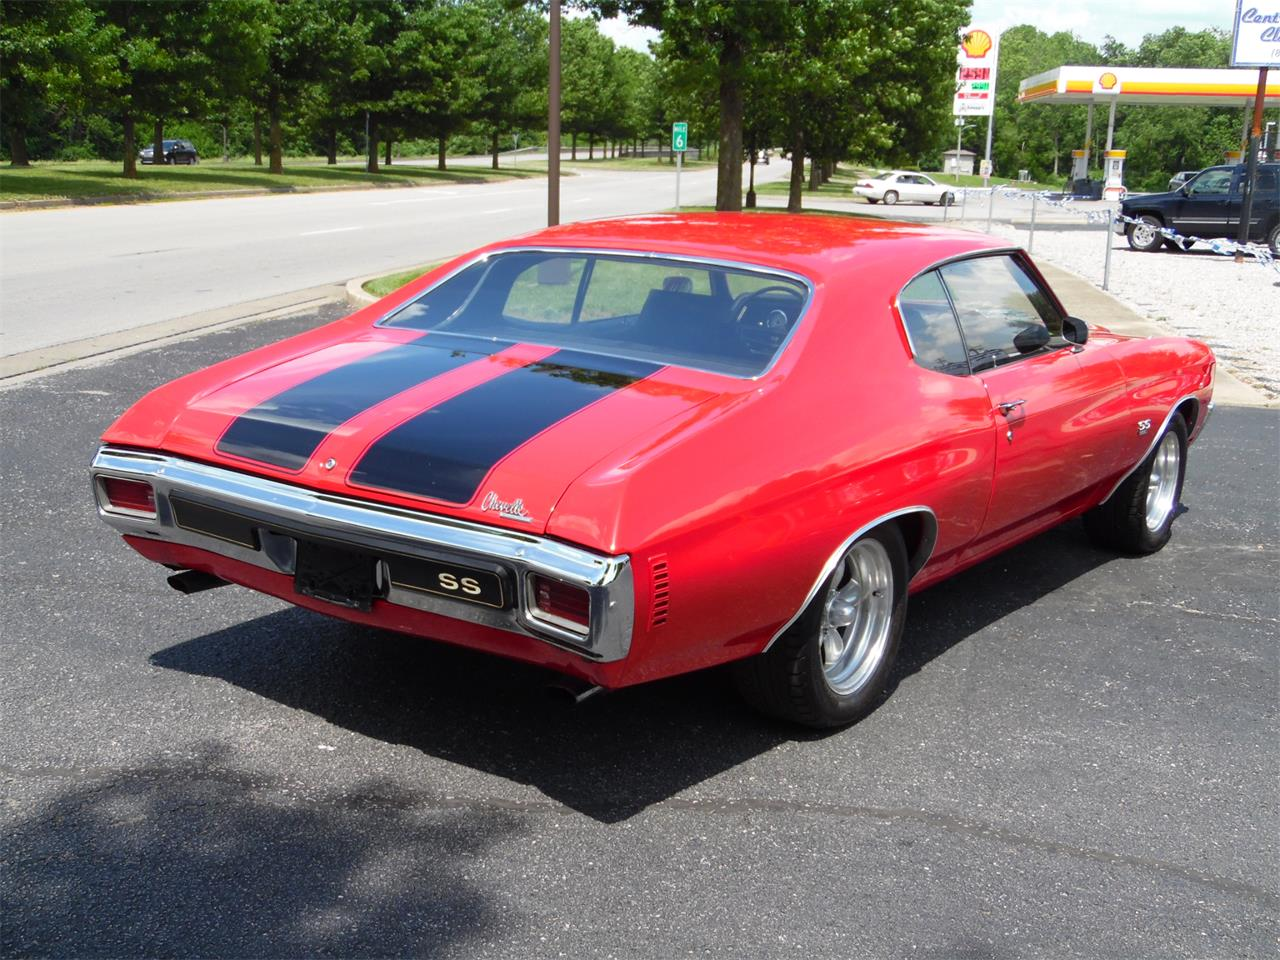 Large Picture of Classic 1970 Chevrolet Chevelle - $38,500.00 - Q6P5